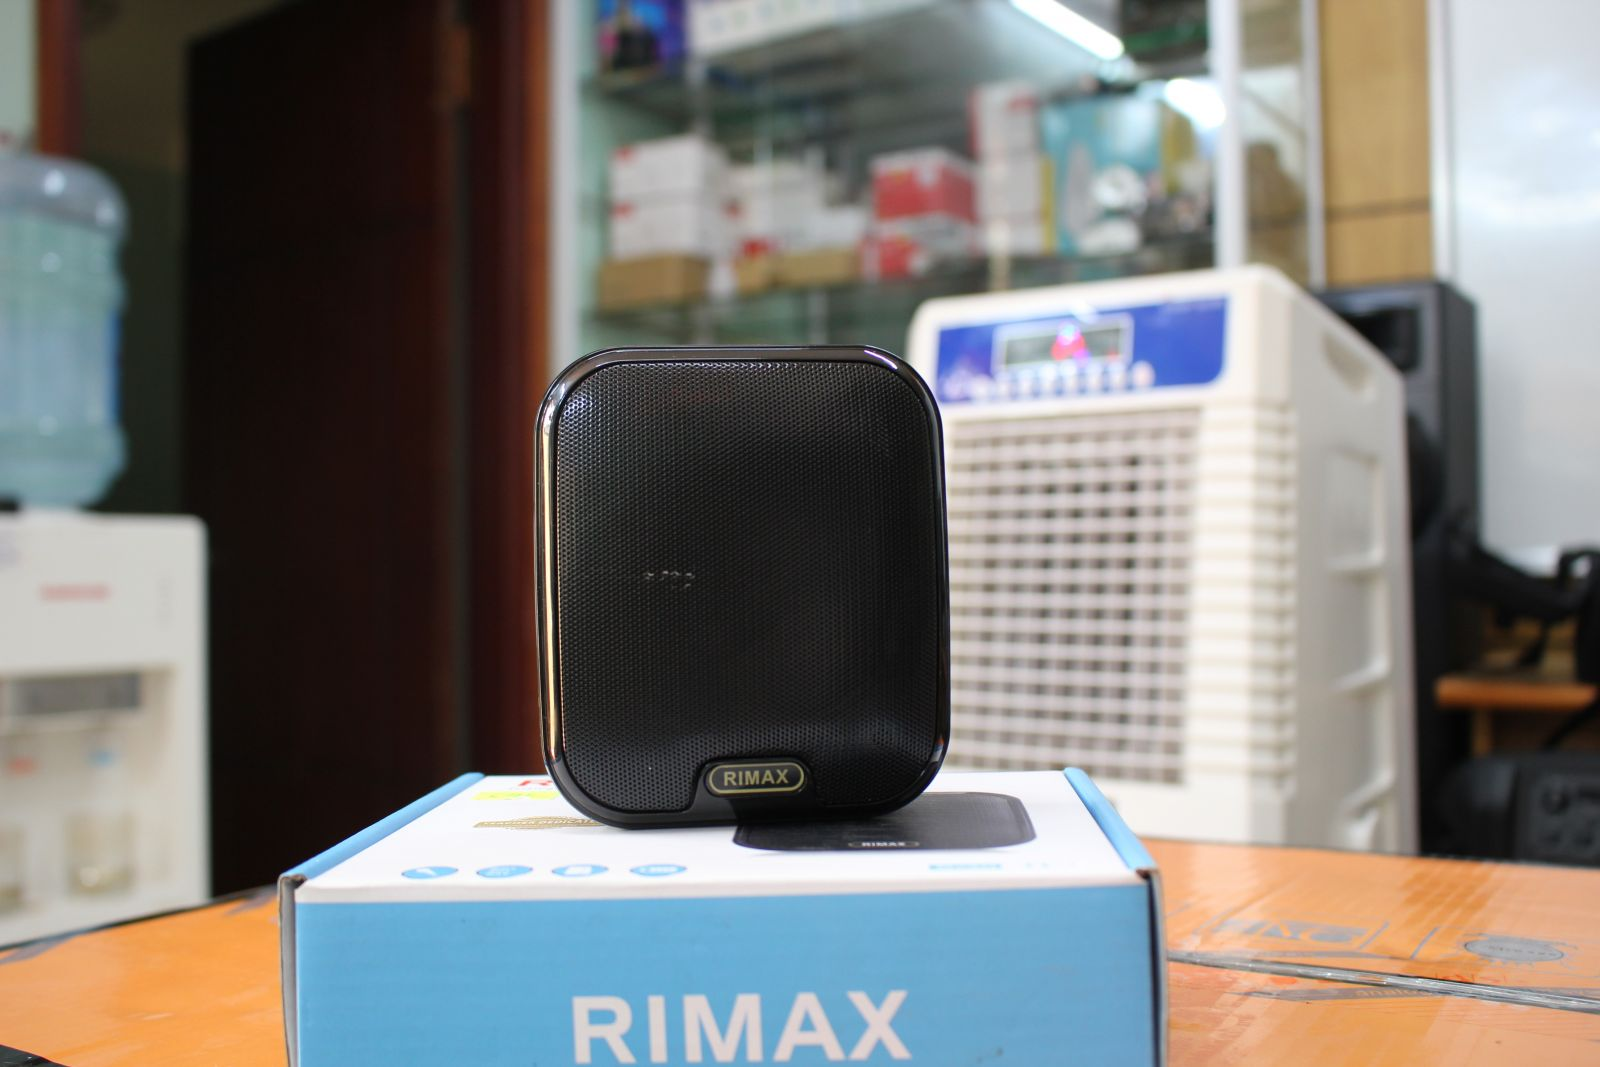 may tro giang rimax t1